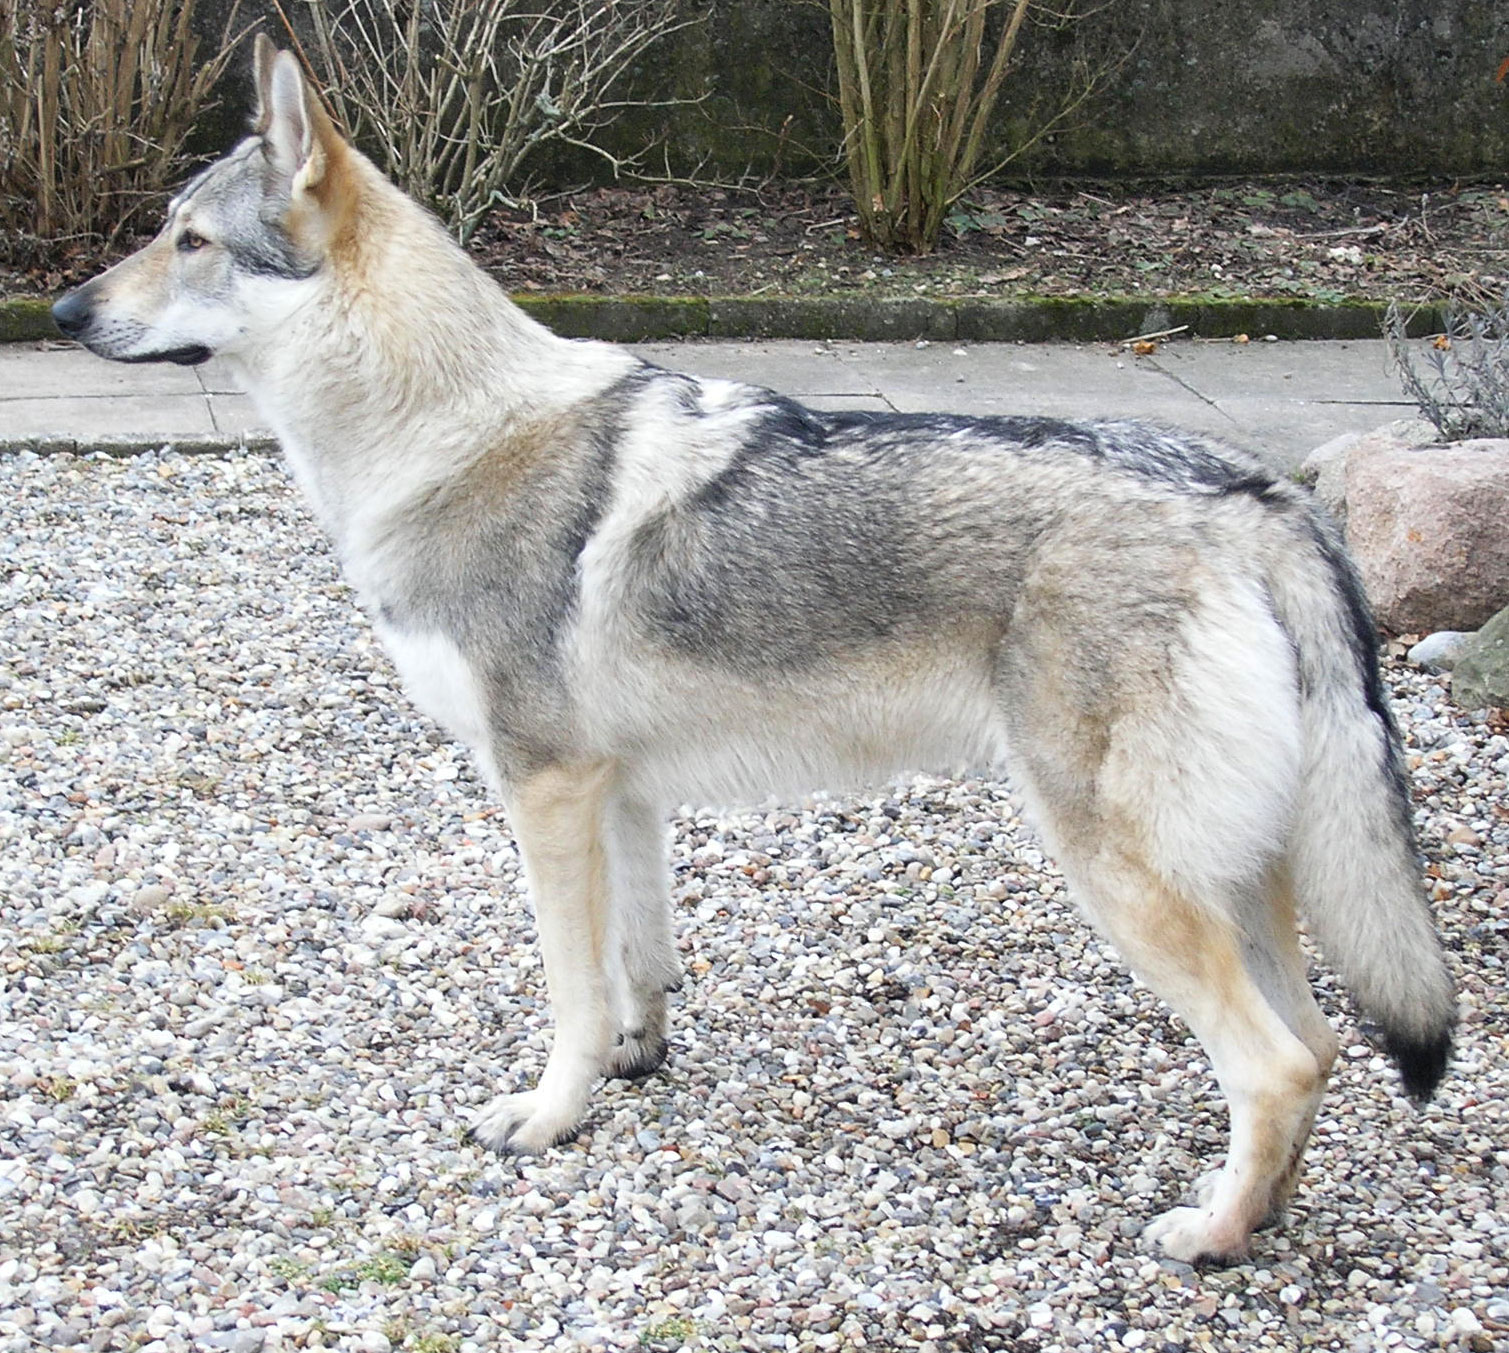 Wolfdog - Hybrid animals